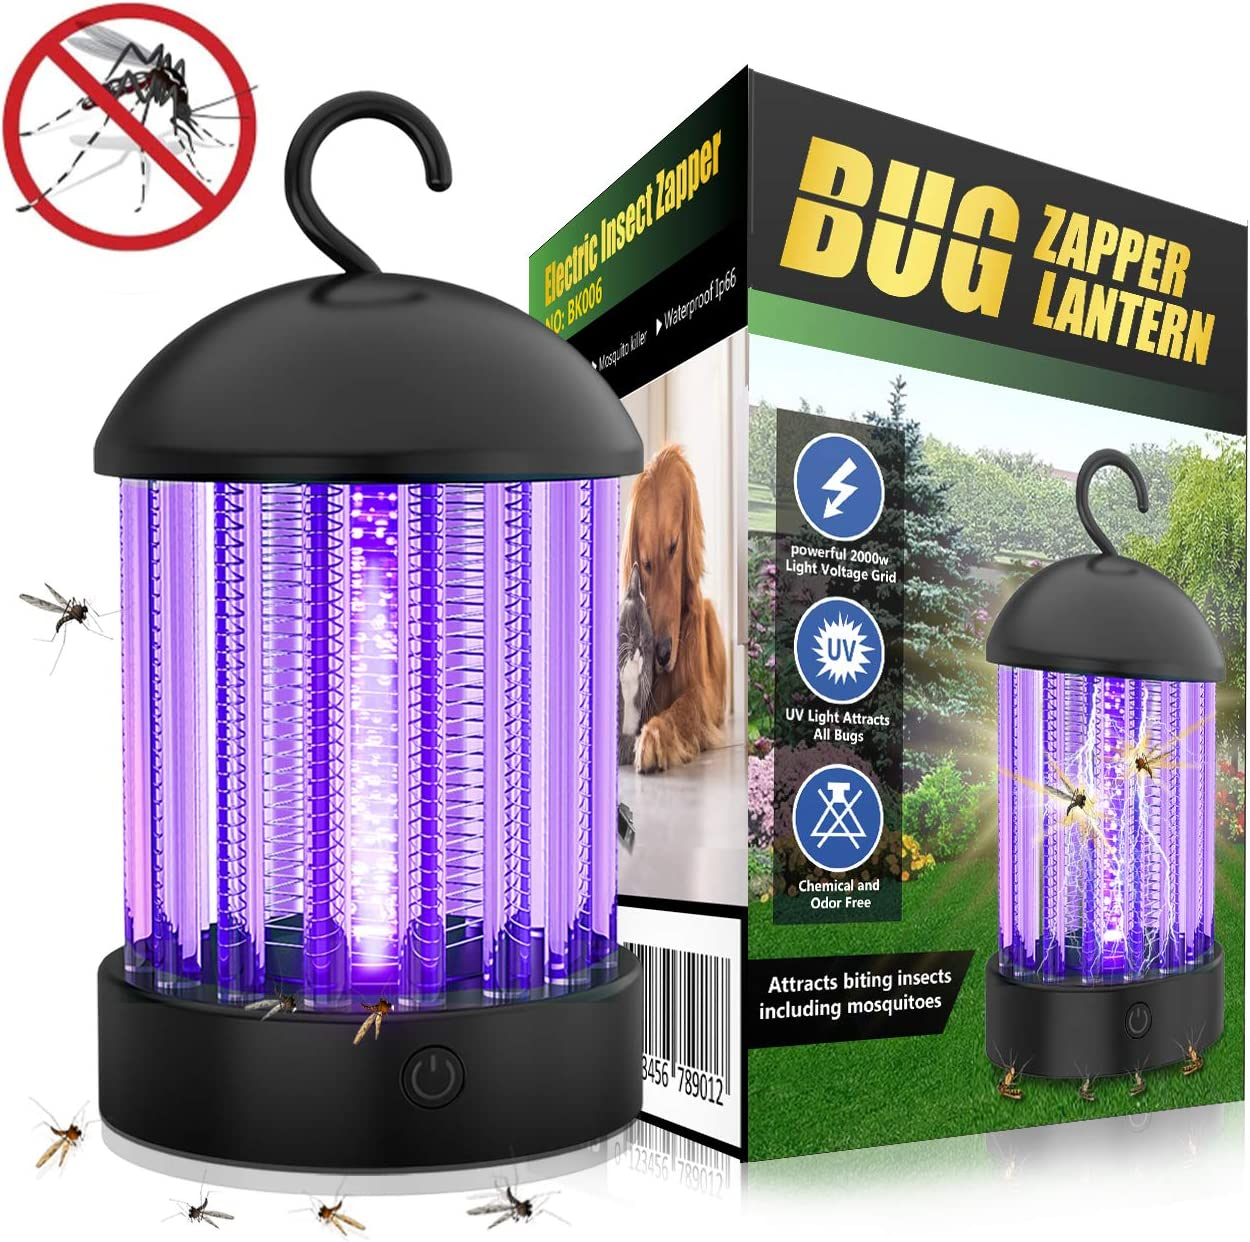 Portable Electronic Indoor Insect Killer, Powerful Bug Zapper with 10 Hours Working Time and Mosquito Killer Safety 3-in-1 UV Light 360 Degree Outdoor Mosquito Trap for Home, Garden, Camping,Fishing